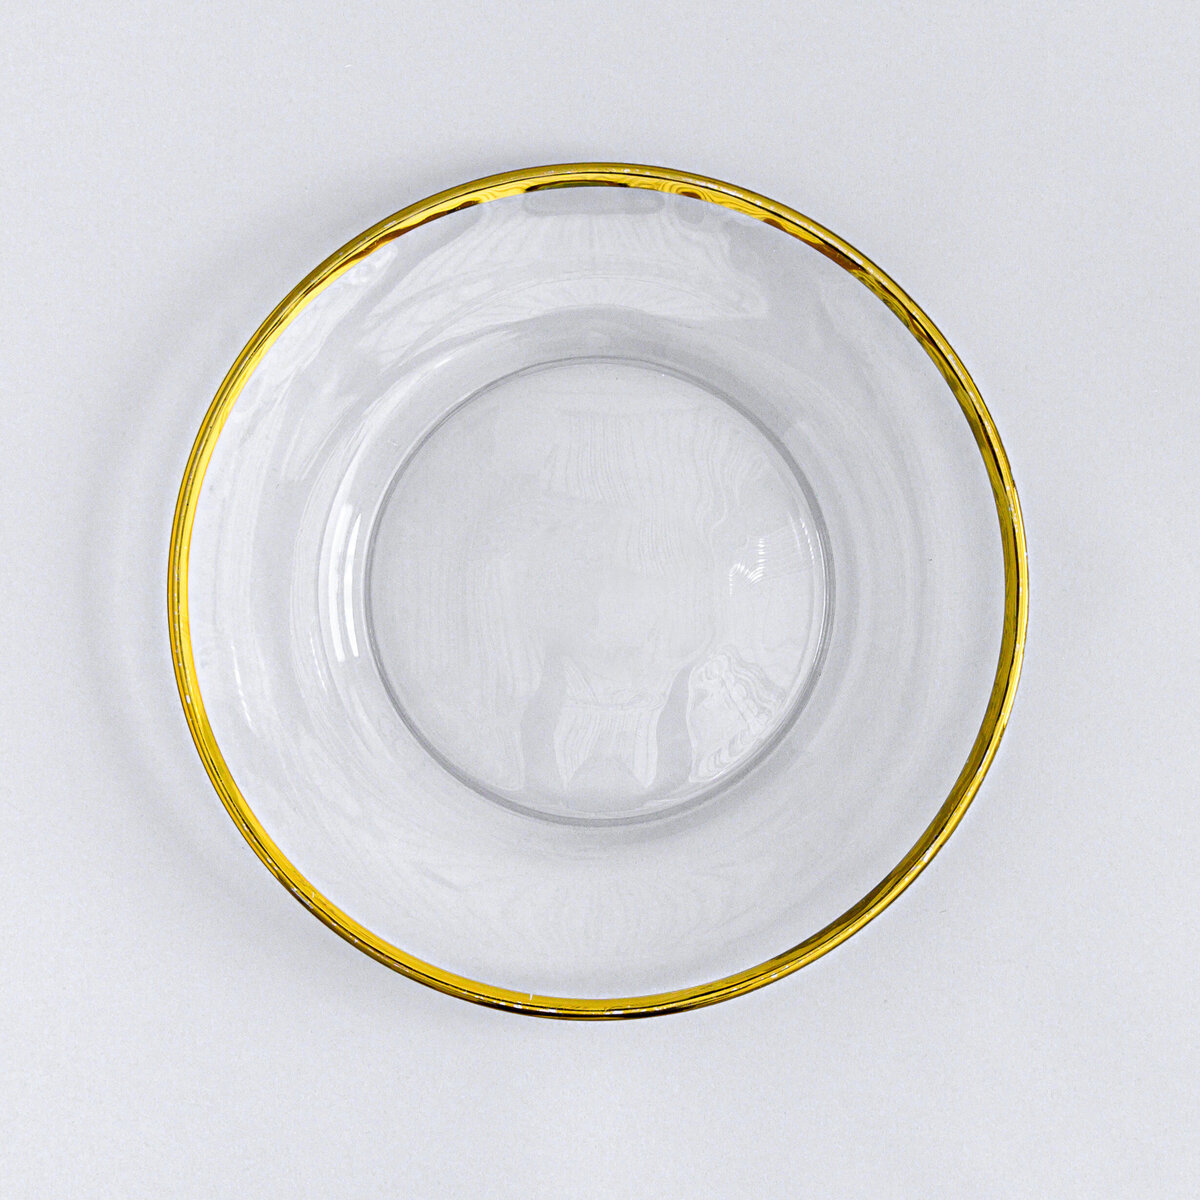 Toronto-Plate-Rental-Tableware-Chargers7